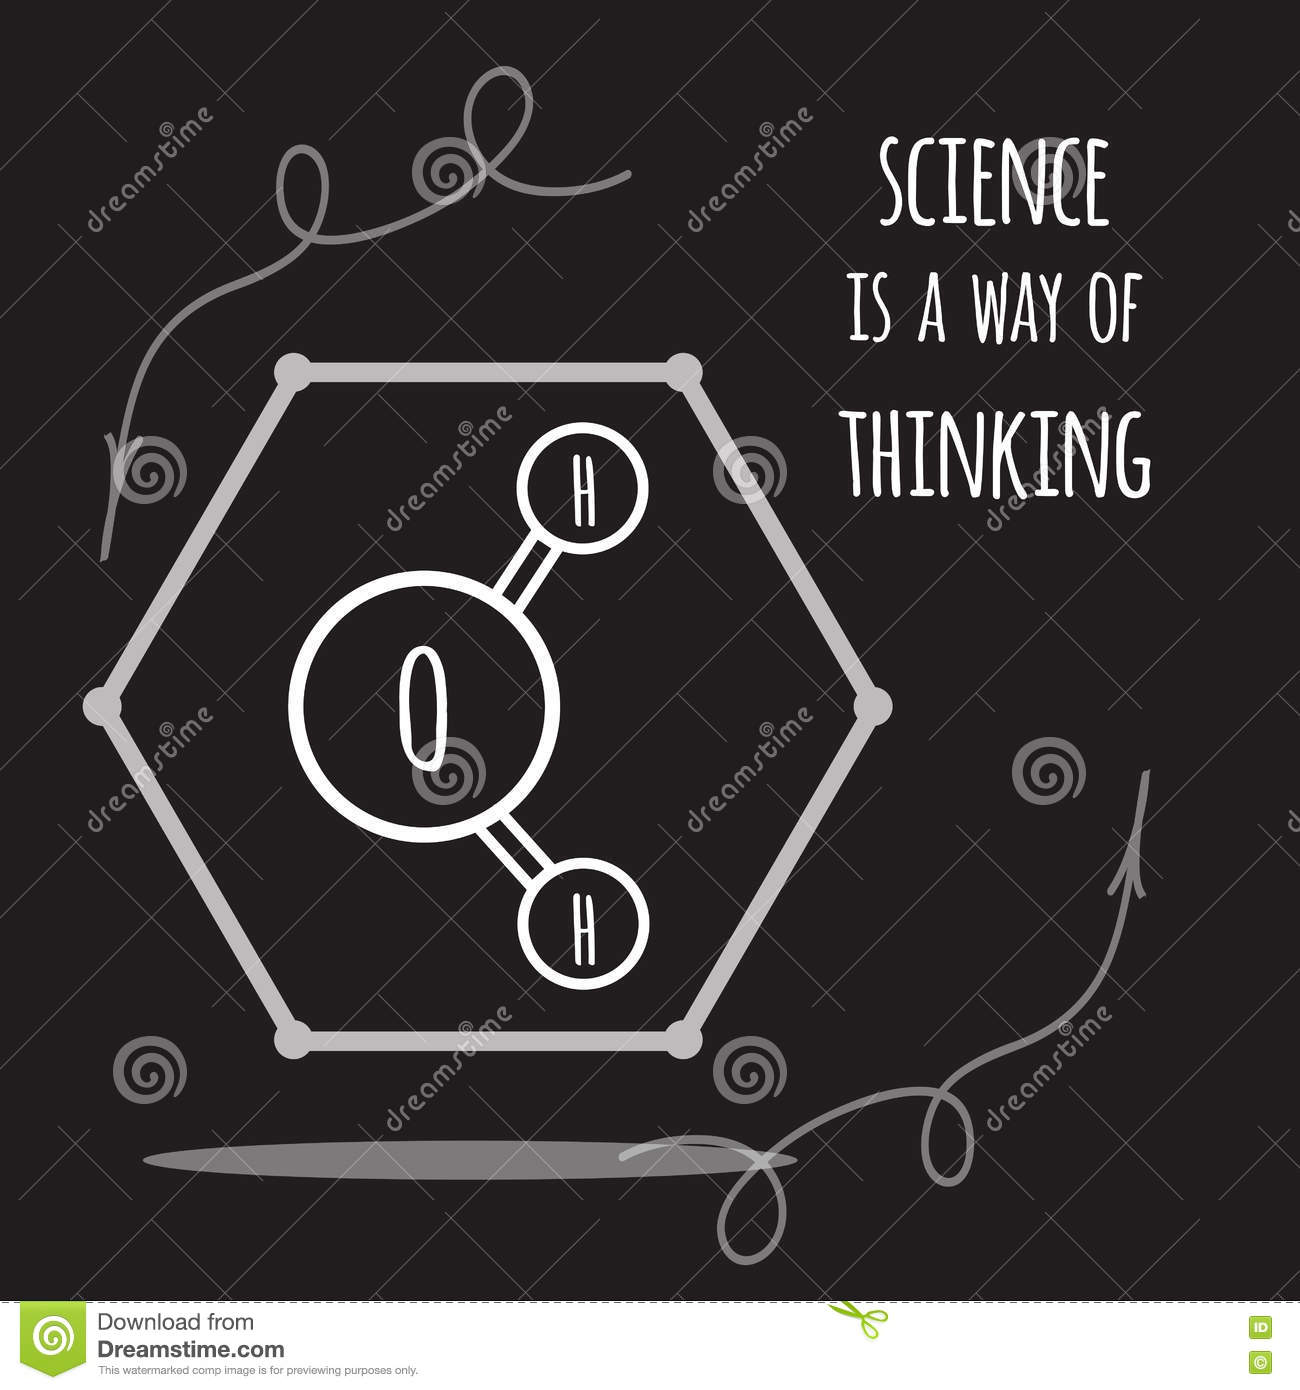 Water Molecule Diagram Black And White.Vector Science Card With Inspirational Quote Decorated Water